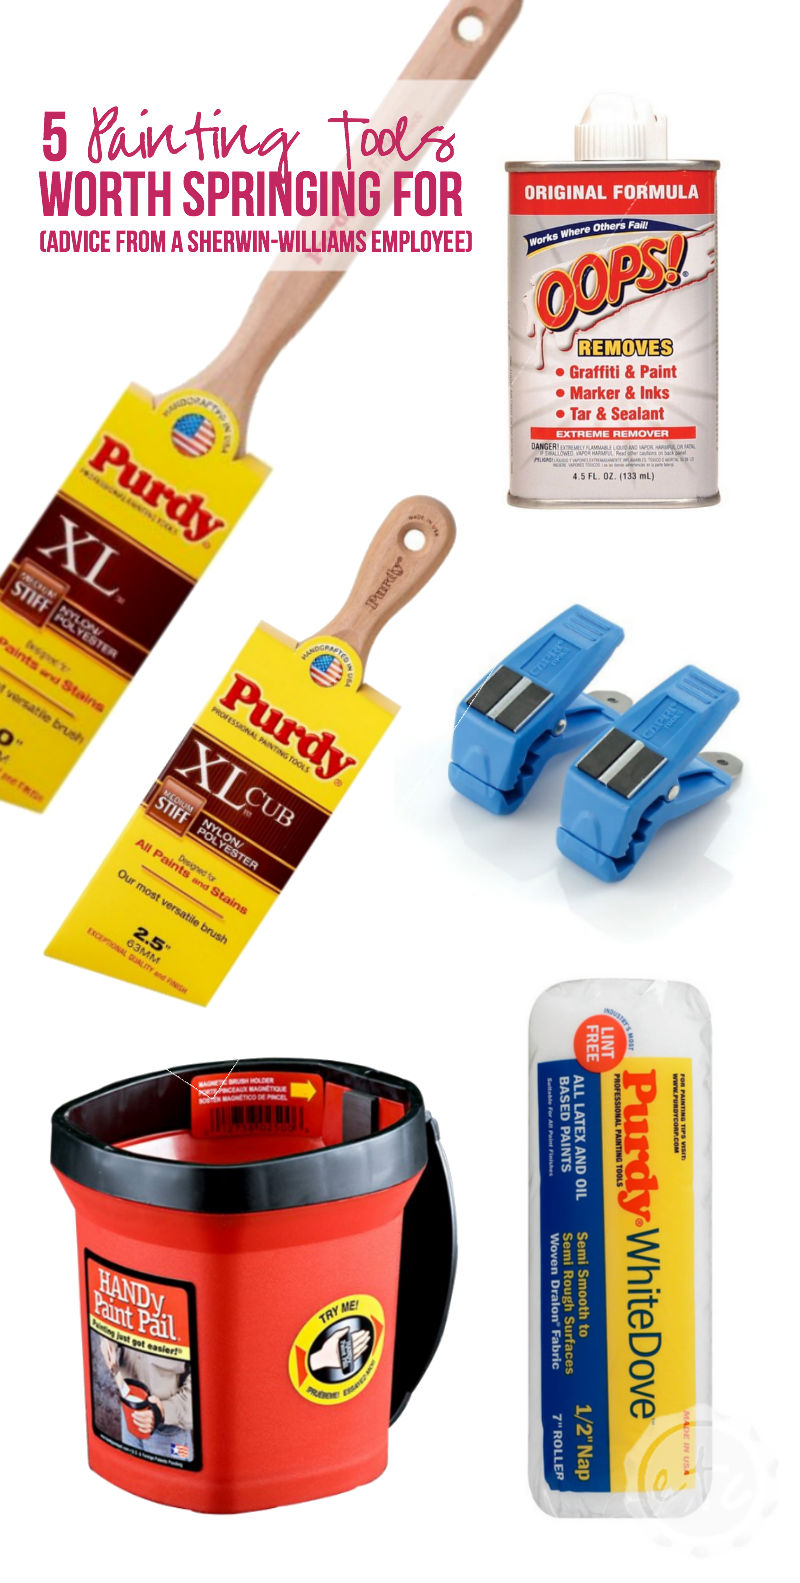 5 Painting Tools Worth Springing for (Advice from a Sherwin-Williams Employee)